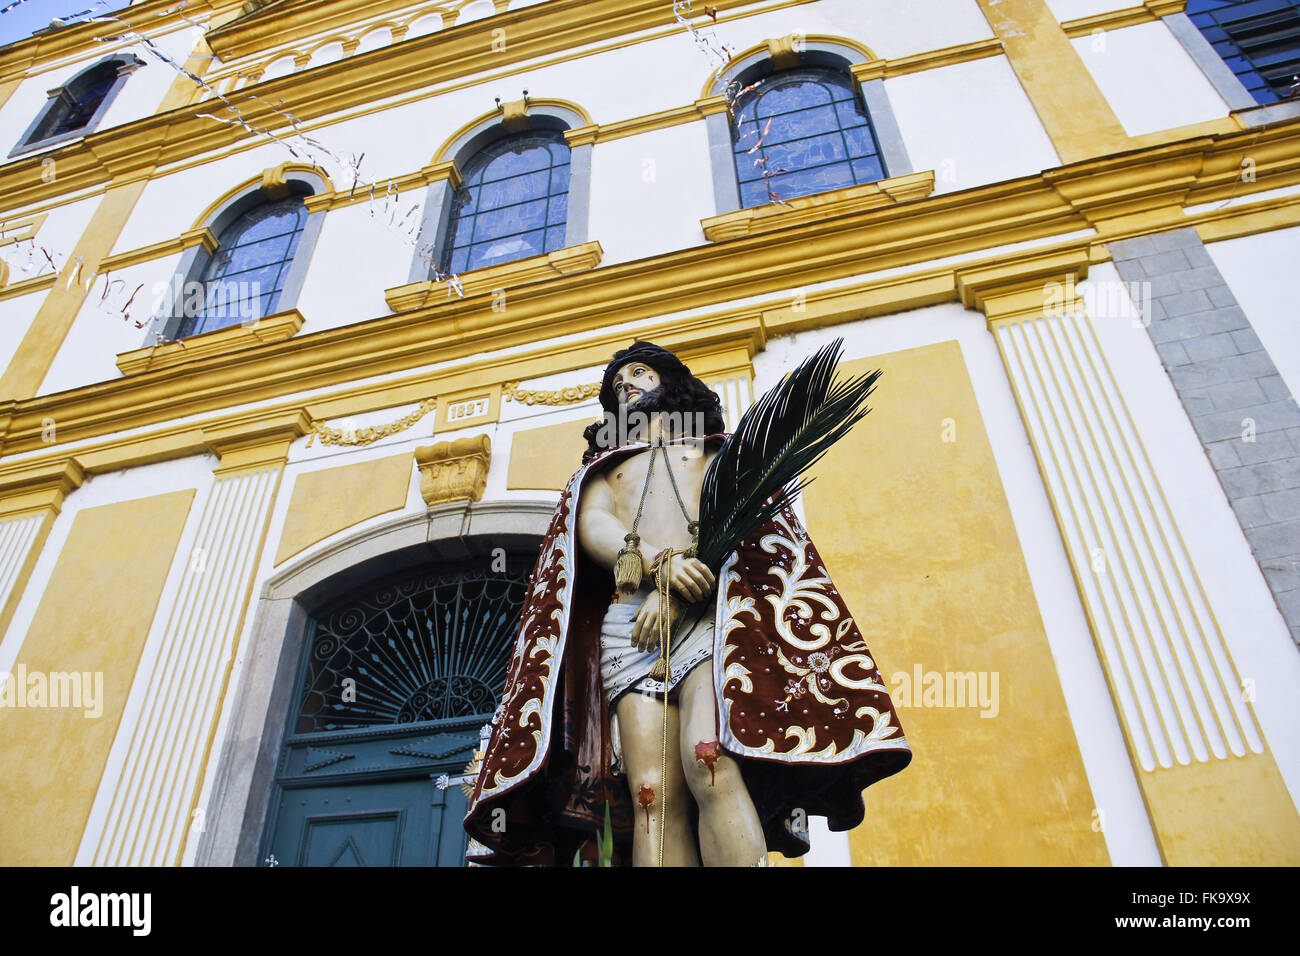 Image of the patron Good Jesus in front of the Santuario of the same name - Stock Image